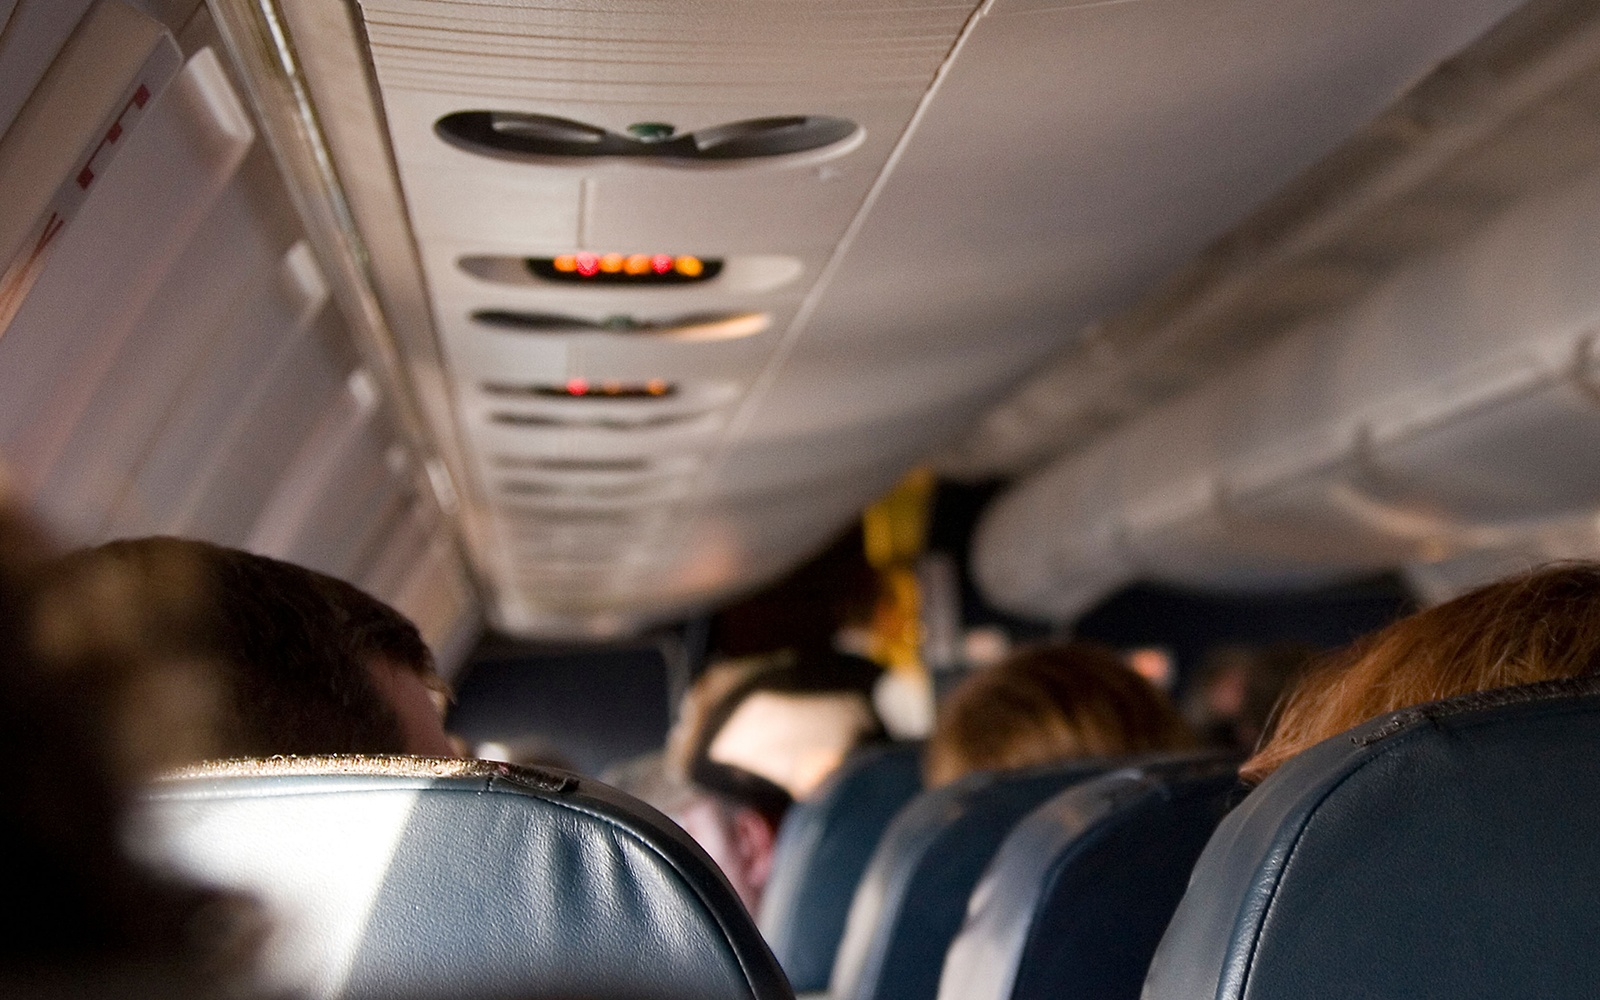 Why Do Airplanes Dim Lights on Takeoff?